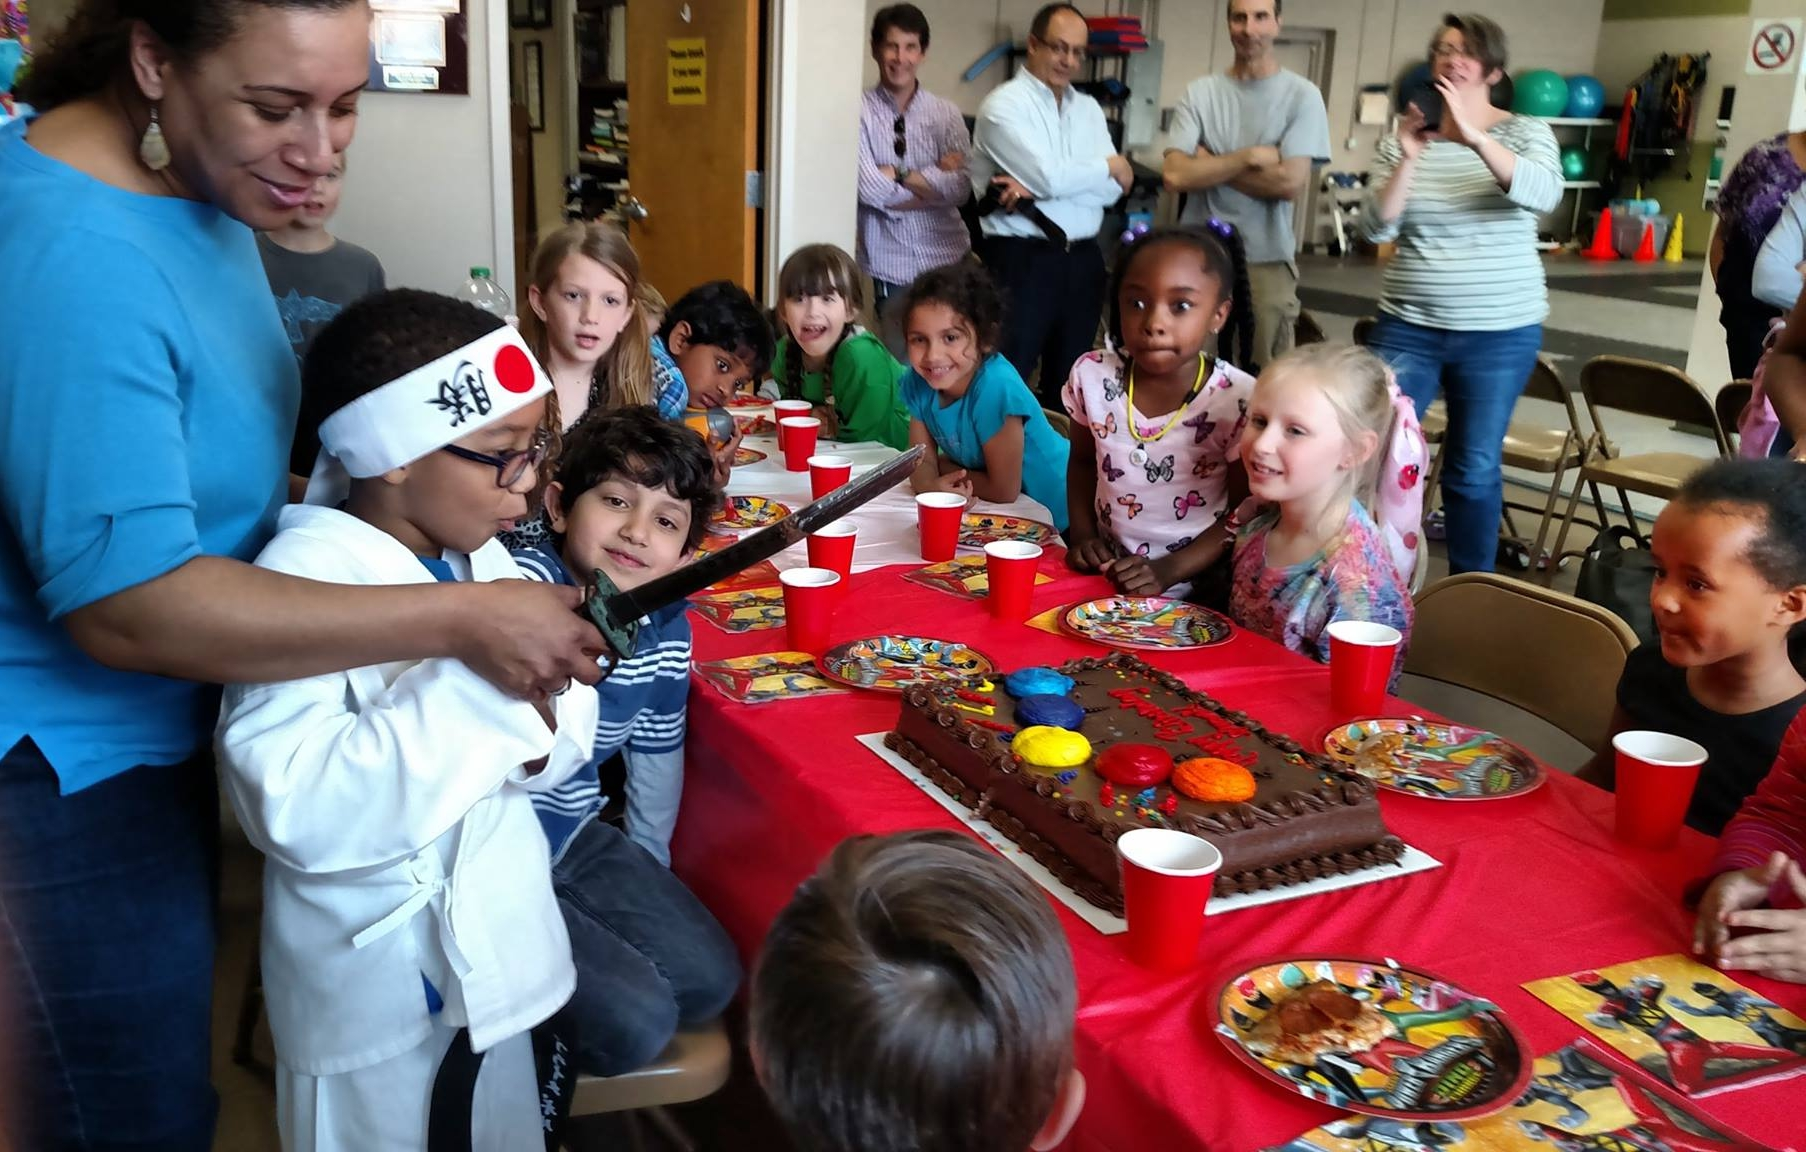 Celebrate your child's special day at Karate International of Durham with a karate-themed birthday party! Become birthday black belt for the day, enjoy martial arts training and games with your guests and we'll even cut your cake with a real sword!